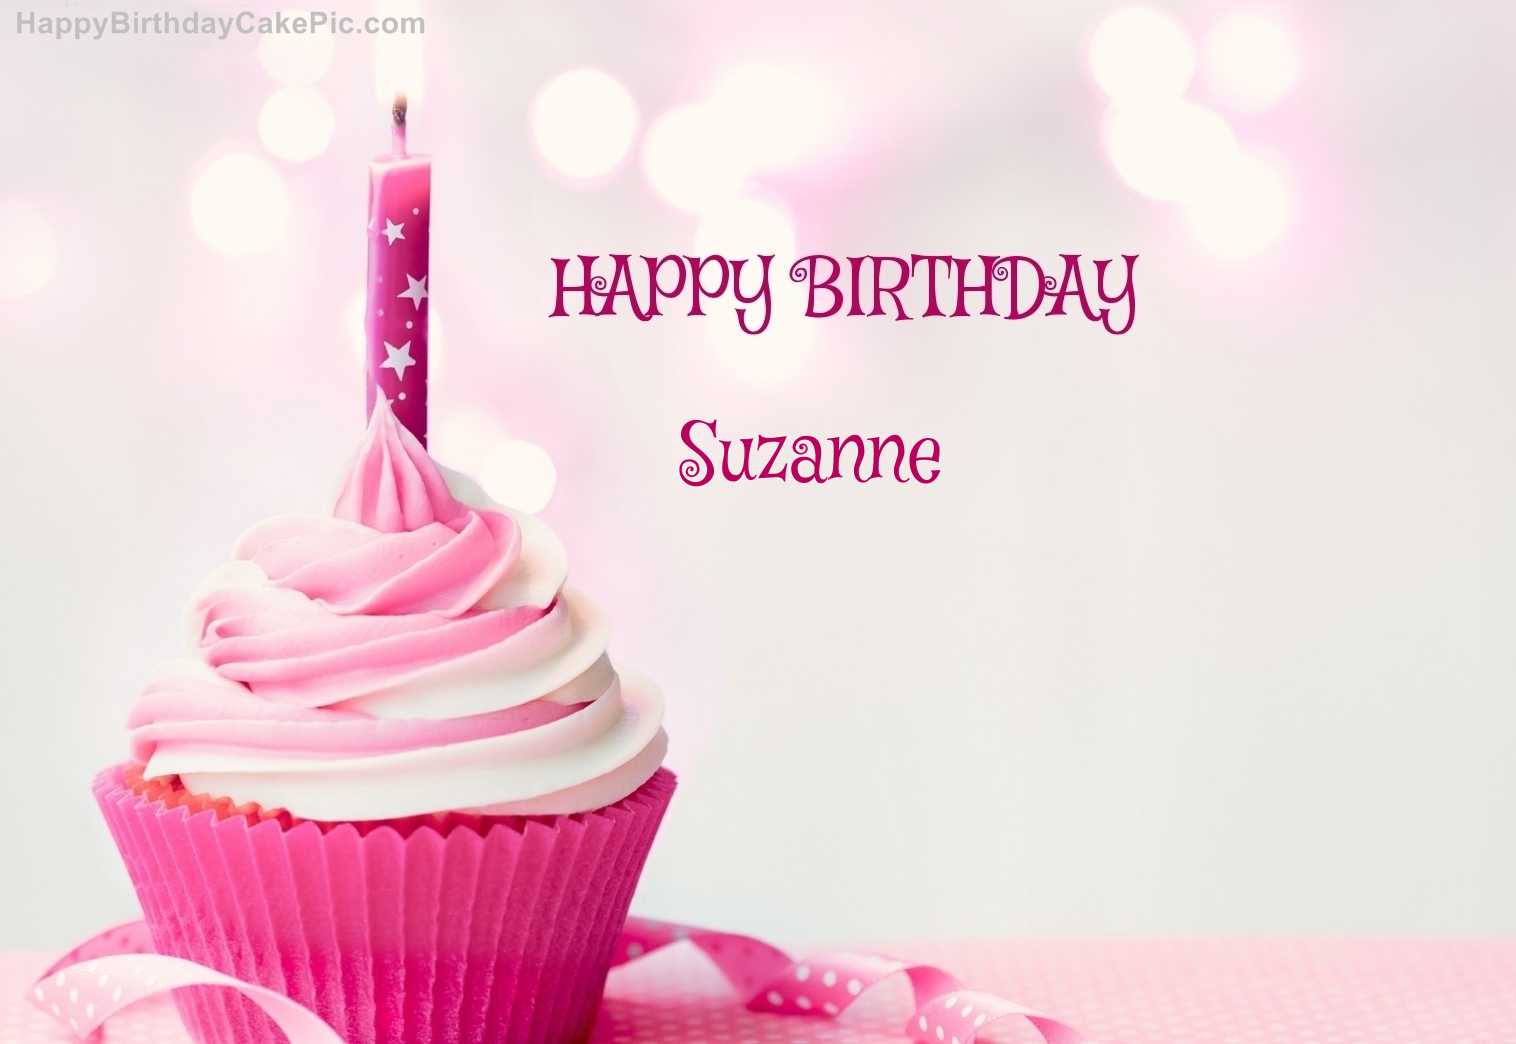 ️ Happy Birthday Cupcake Candle Pink Cake For Suzanne